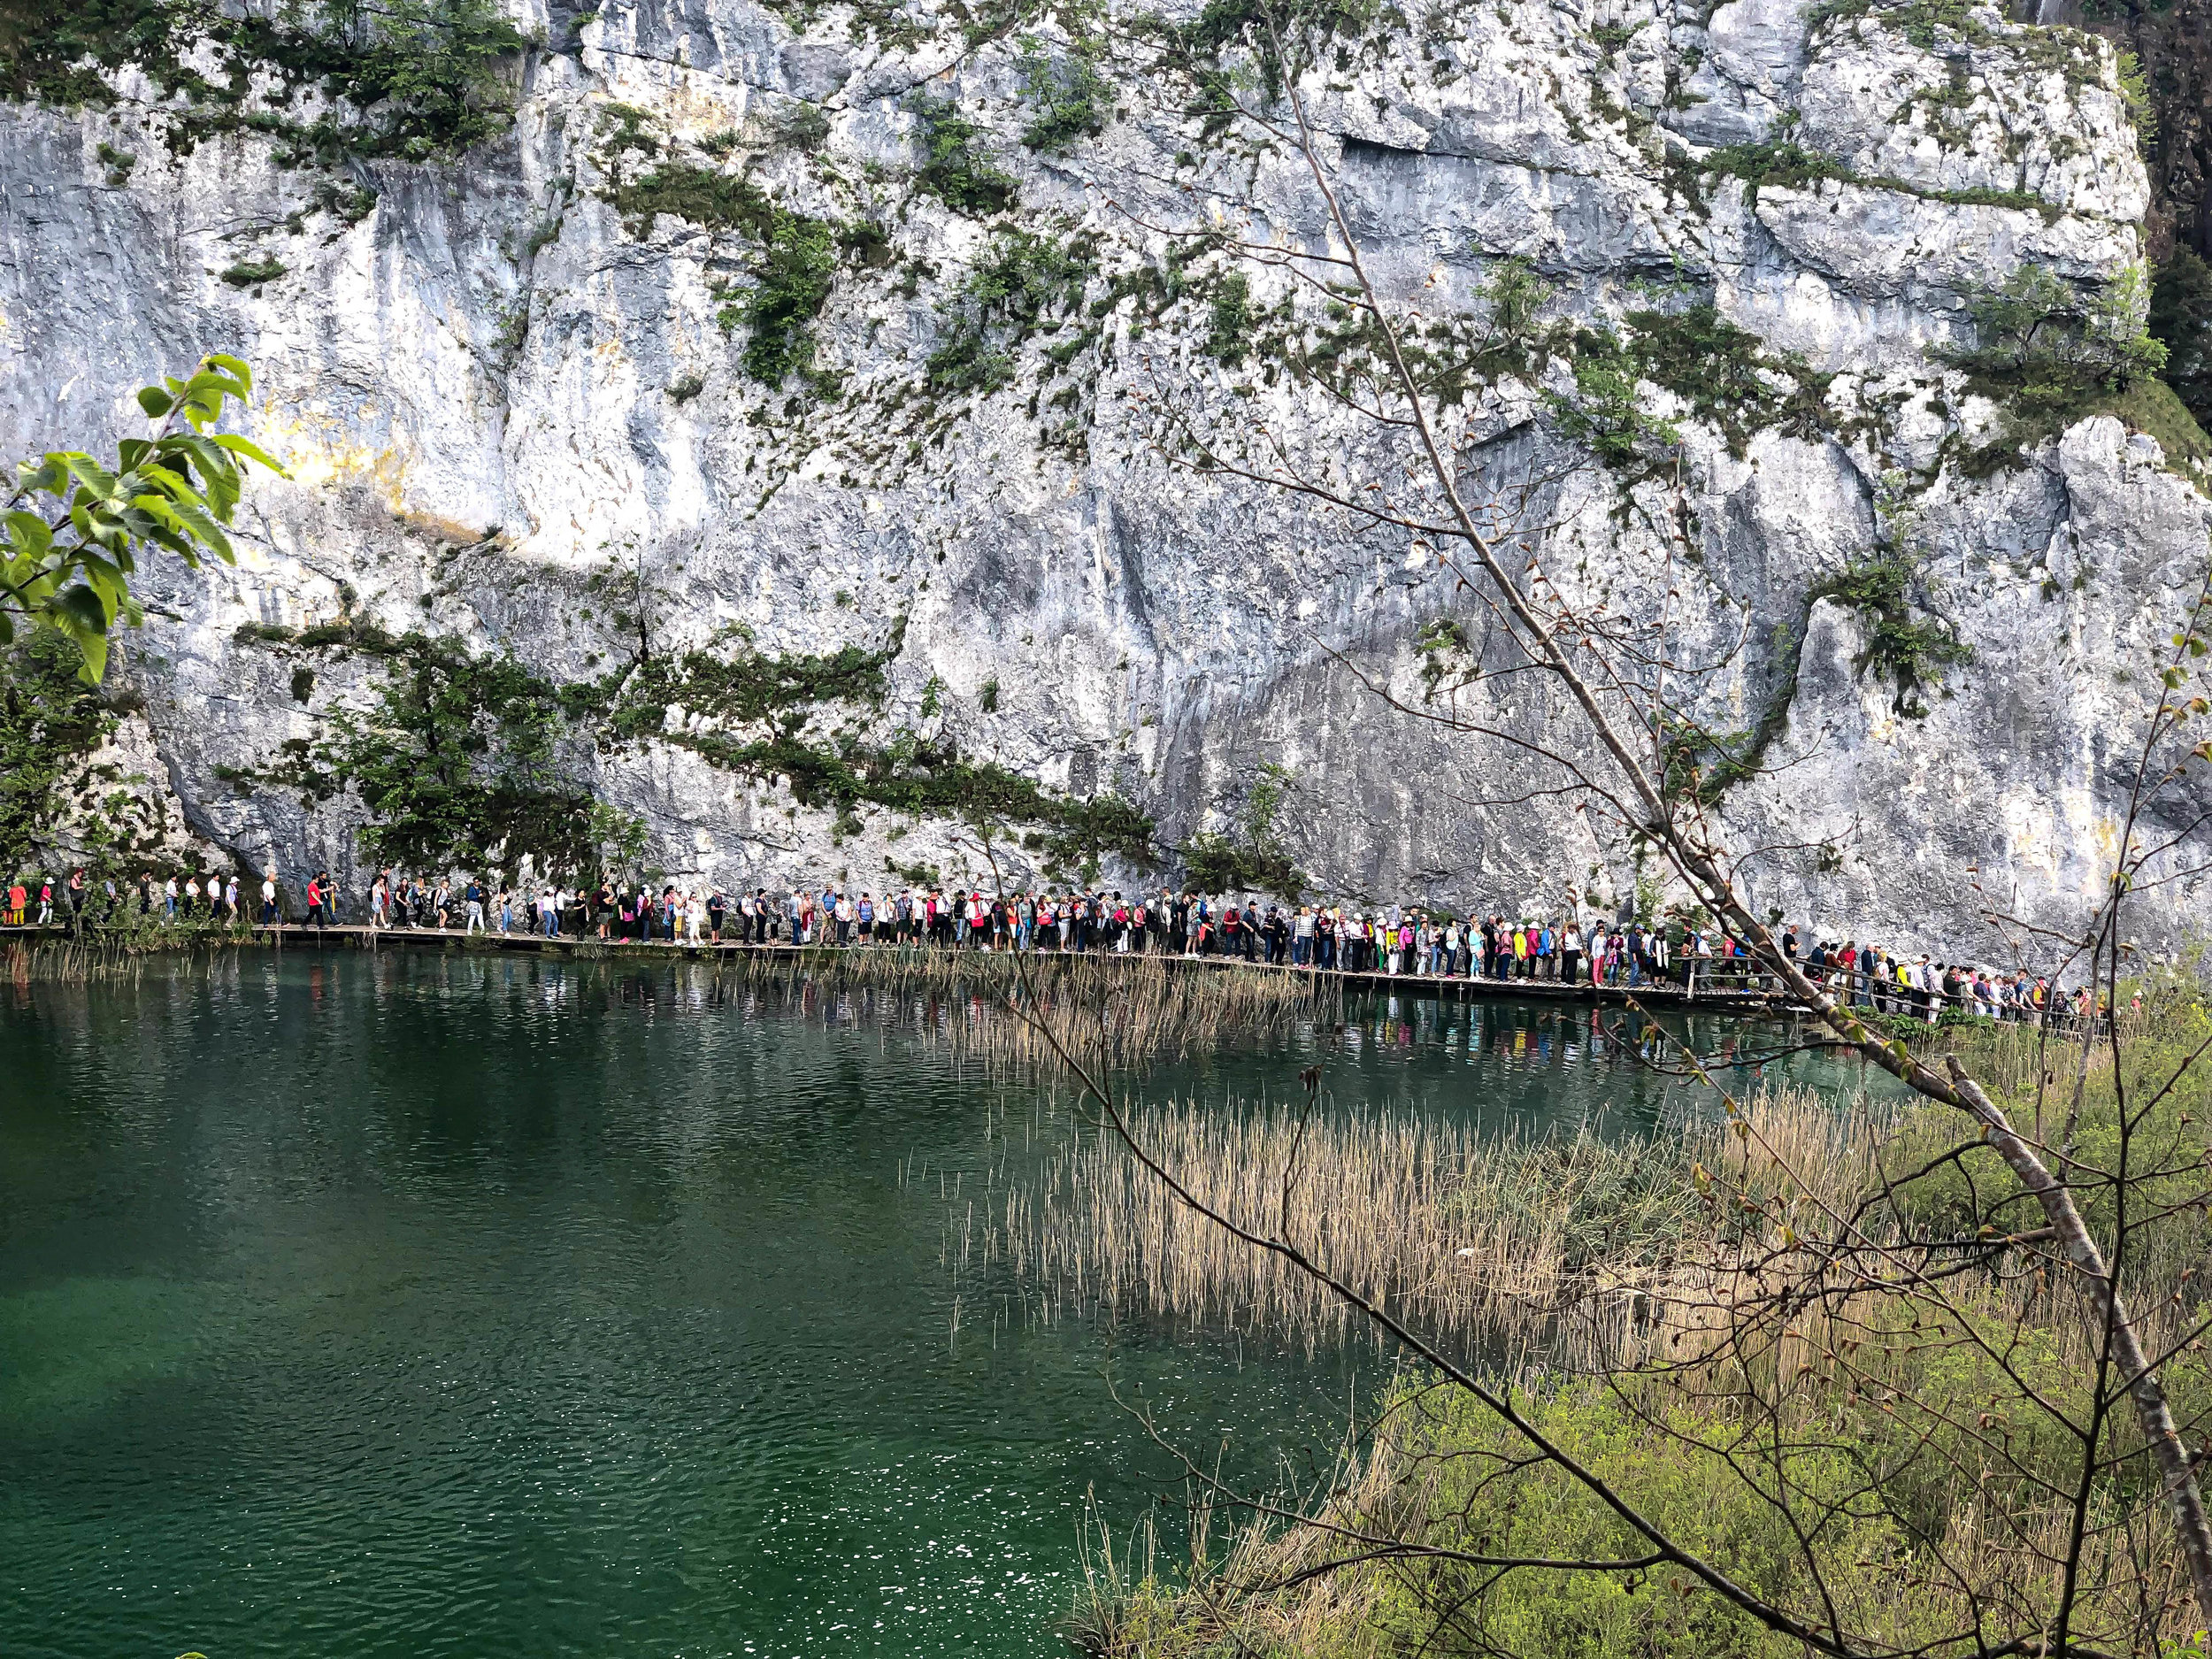 Plitvice afternoon crowds.